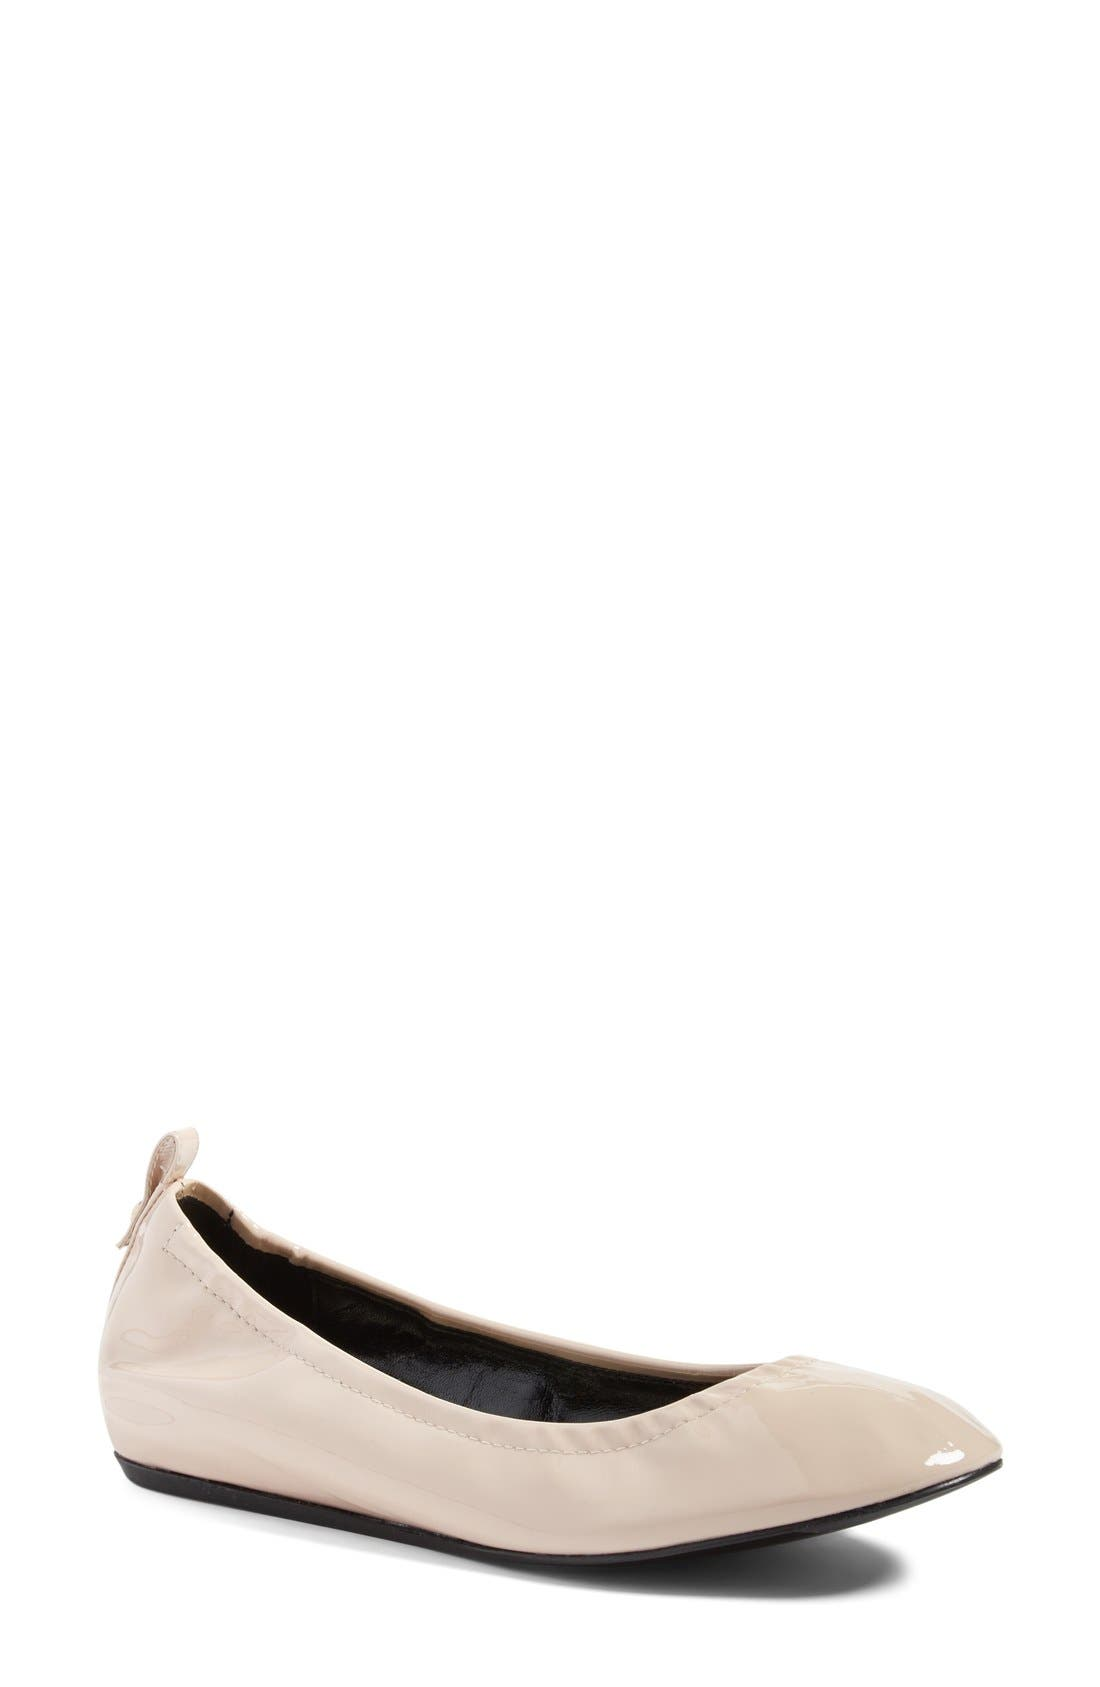 Alternate Image 1 Selected - Lanvin Smooth Leather Ballet Flat (Women)